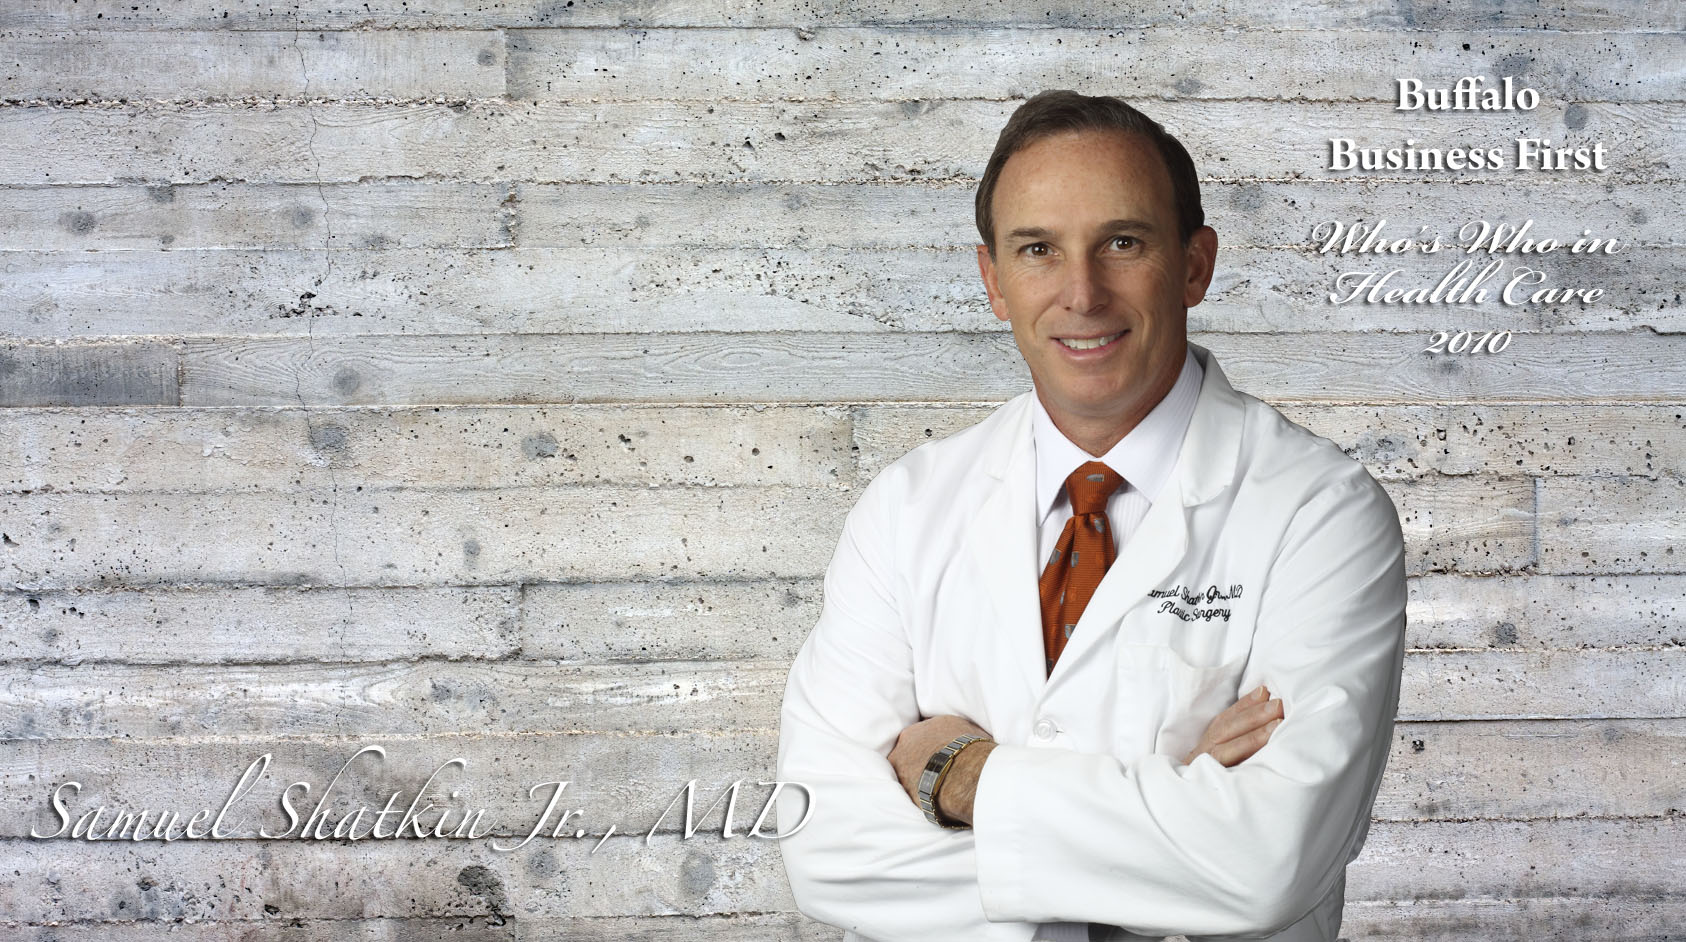 Samuel Shatkin Jr., MD- Award Winning Plastic Surgeon